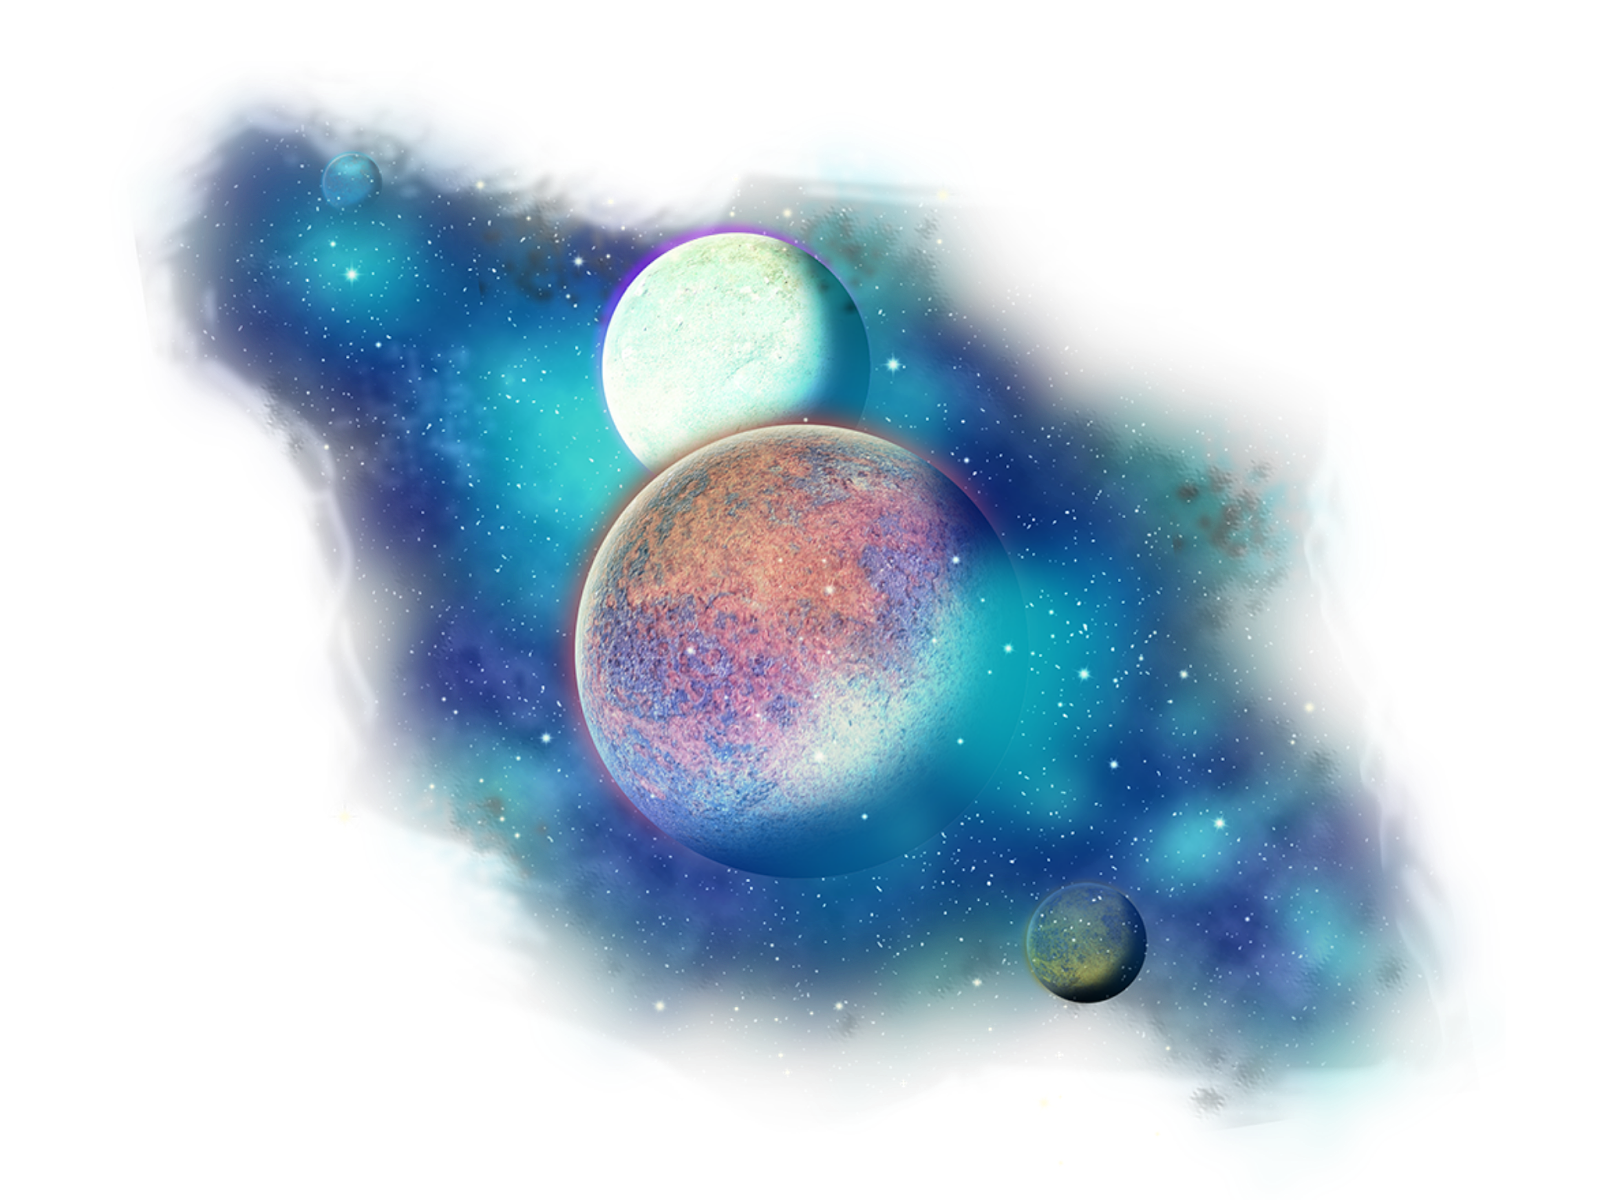 Freetoedit Clipart Png Stars Galaxy Planets With A Transparent Background Br Remixit Watercolor Splash Png Planet Design Wreath Clip Art